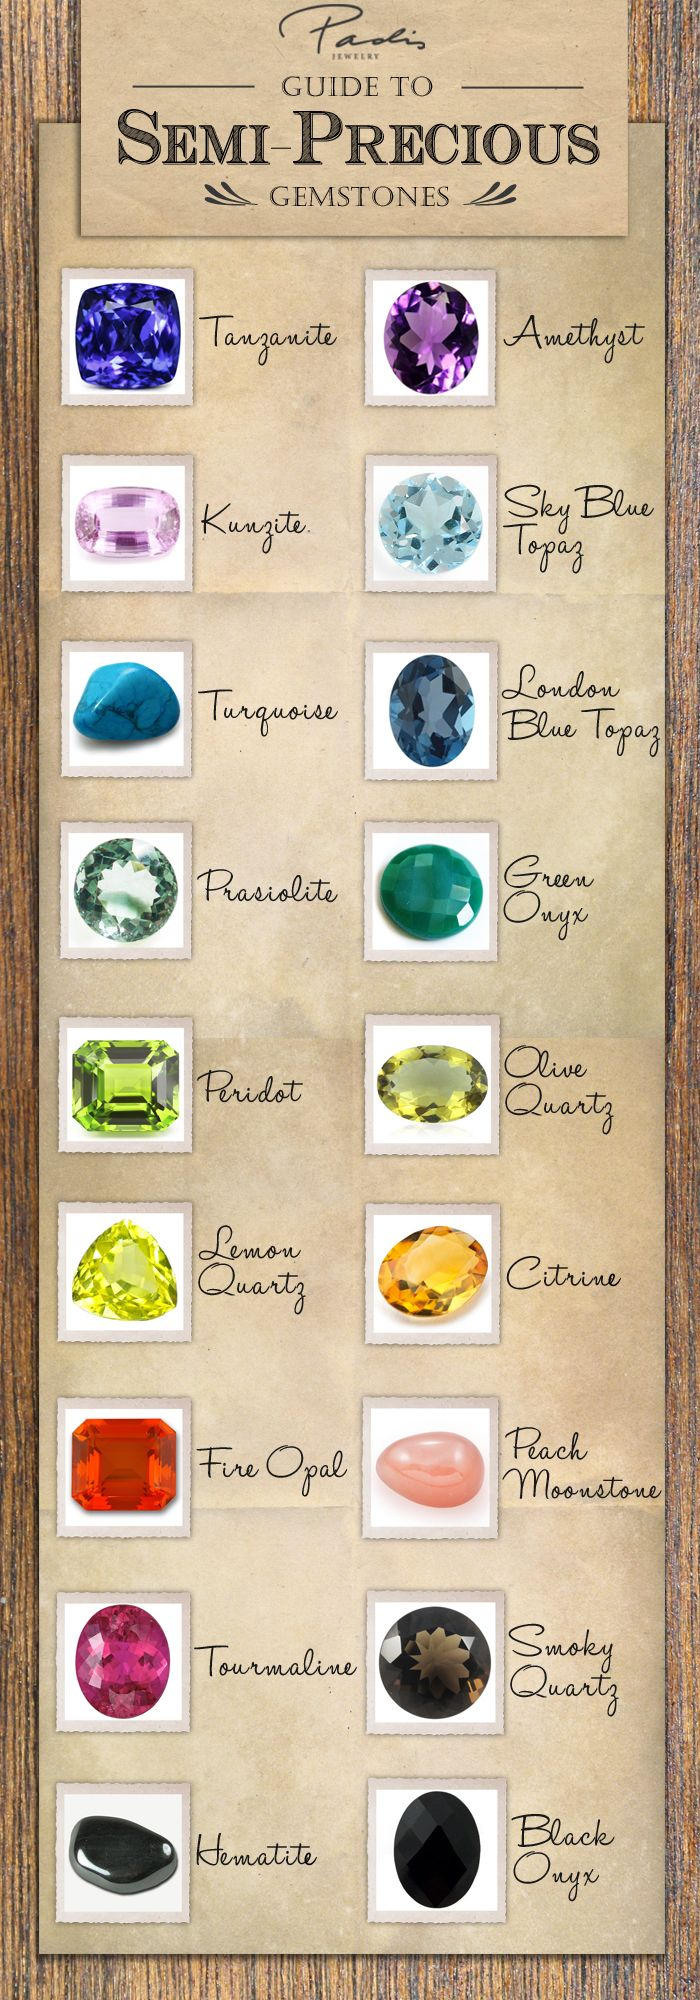 A handful of the semi-precious gemstones that we carry, set in fashion jewelry, at our stores.